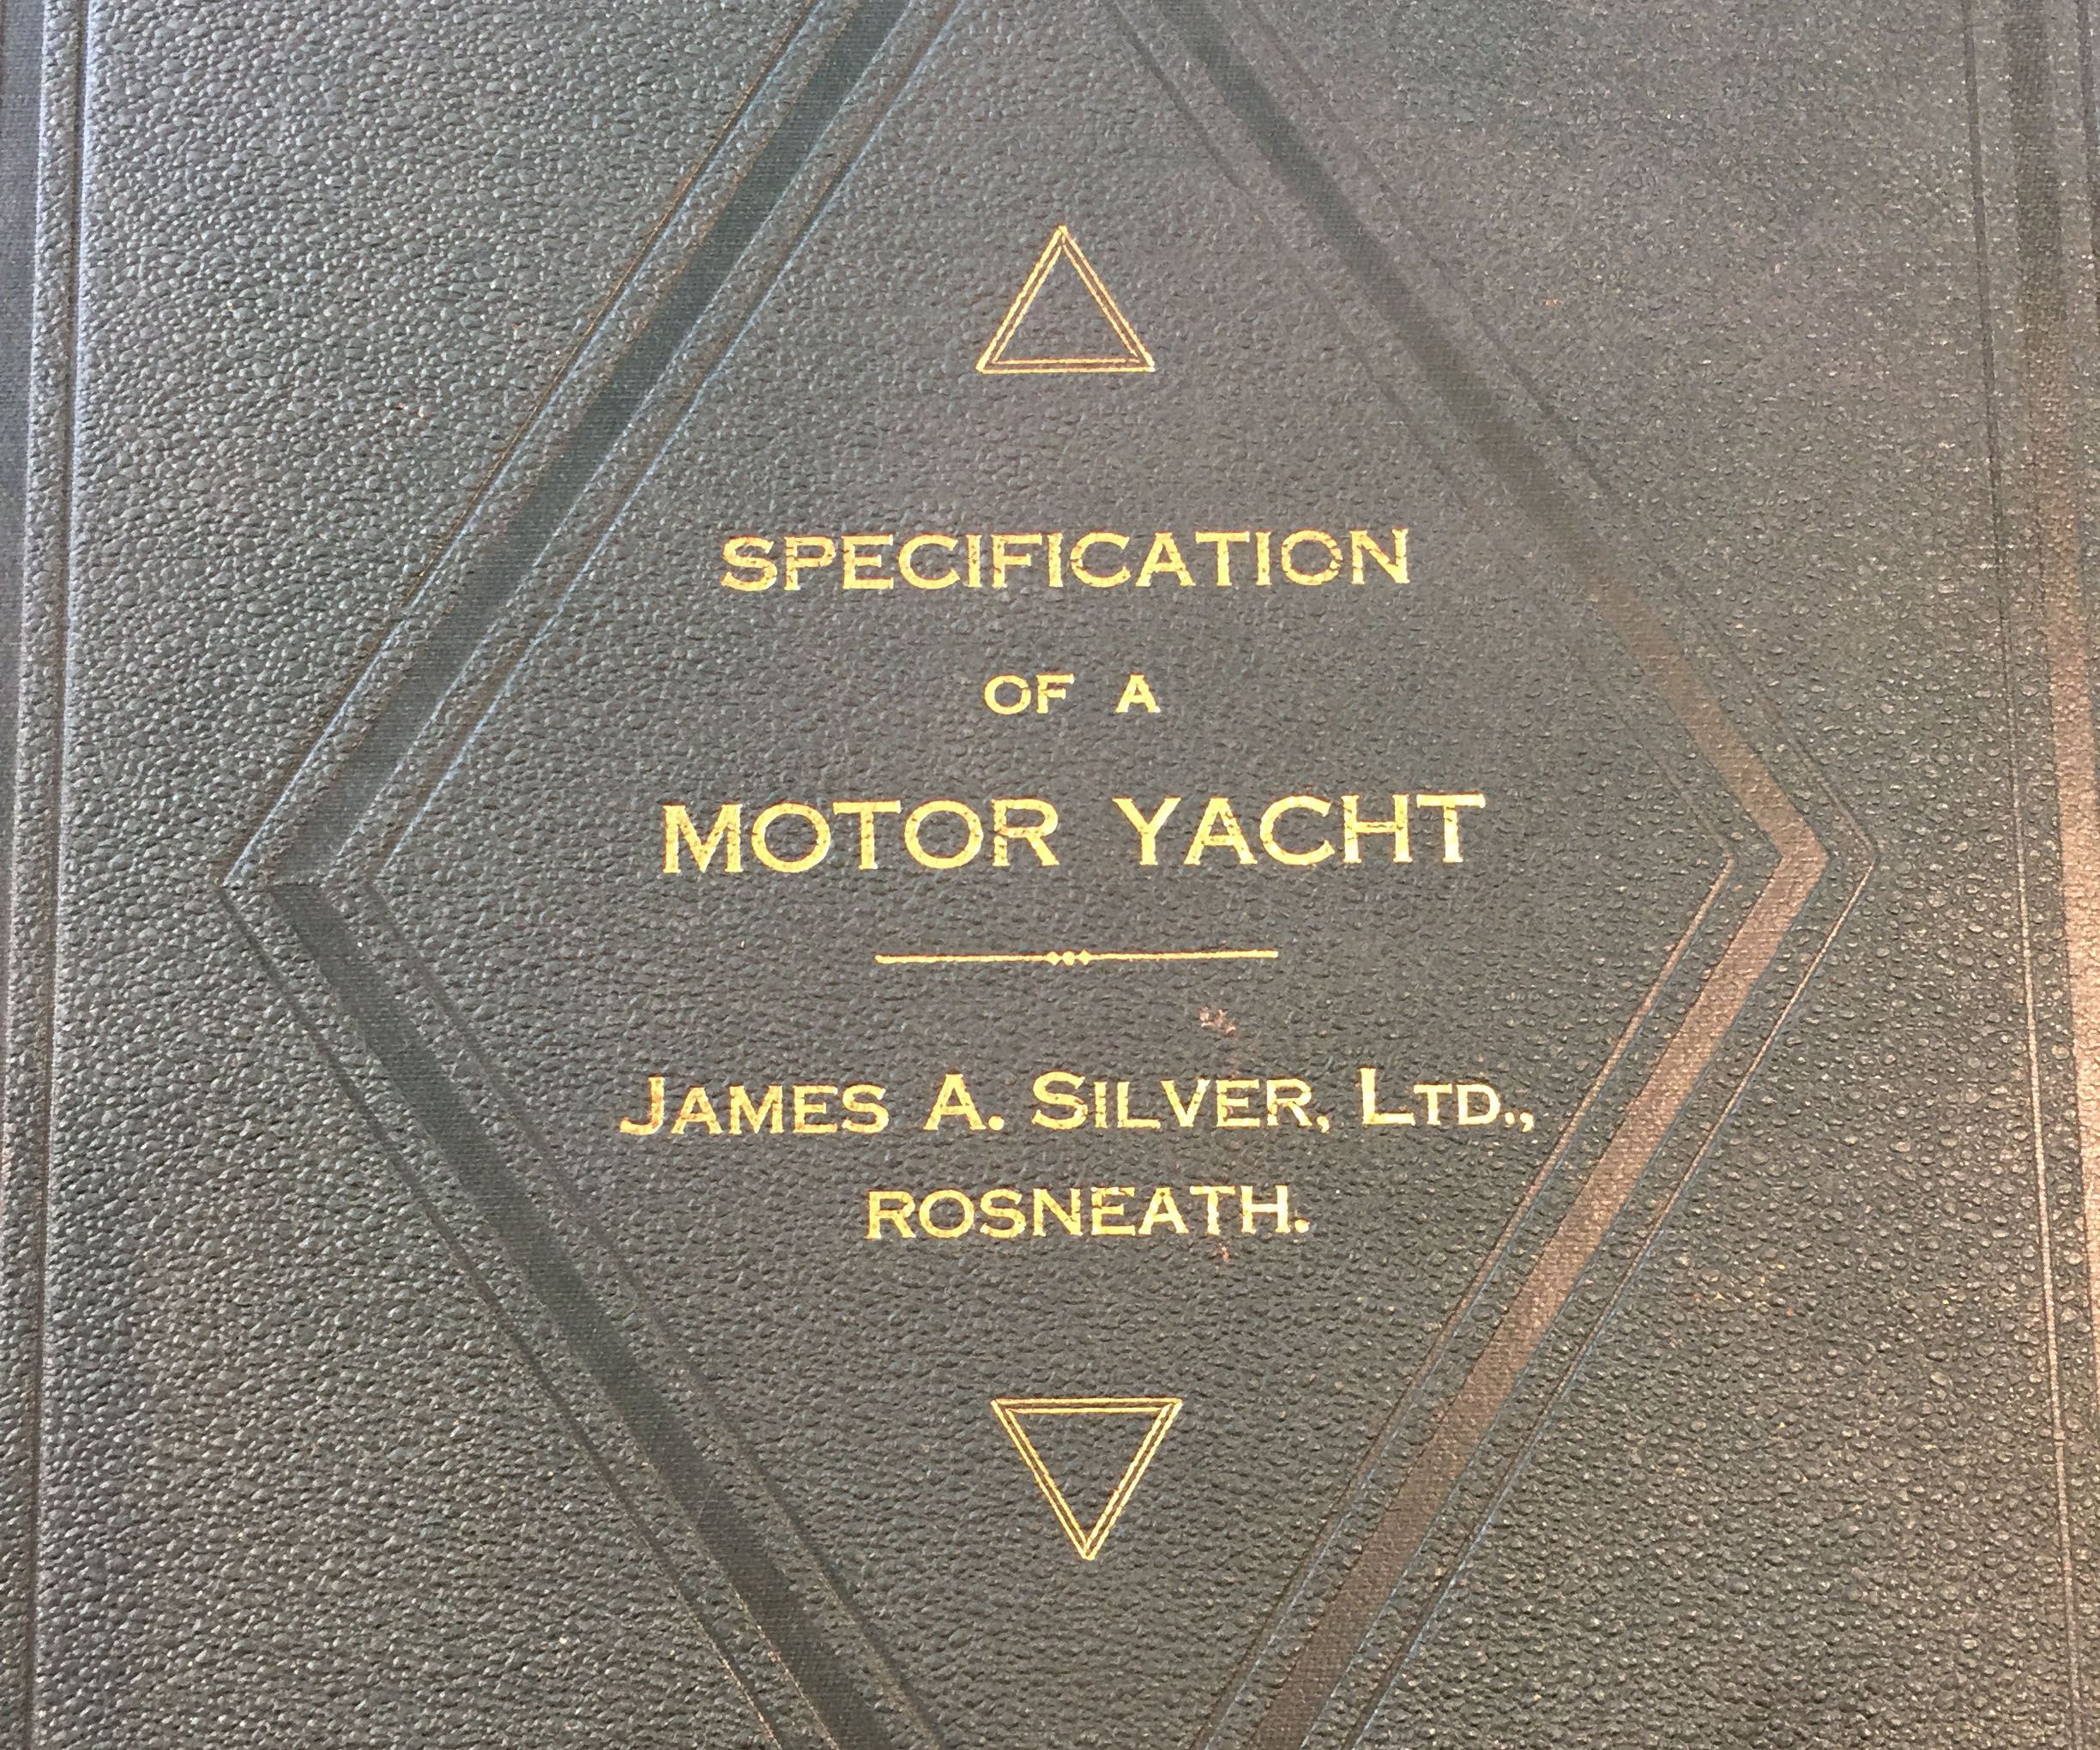 Downside Catholic School Archive - Specification of a Motor Yacht